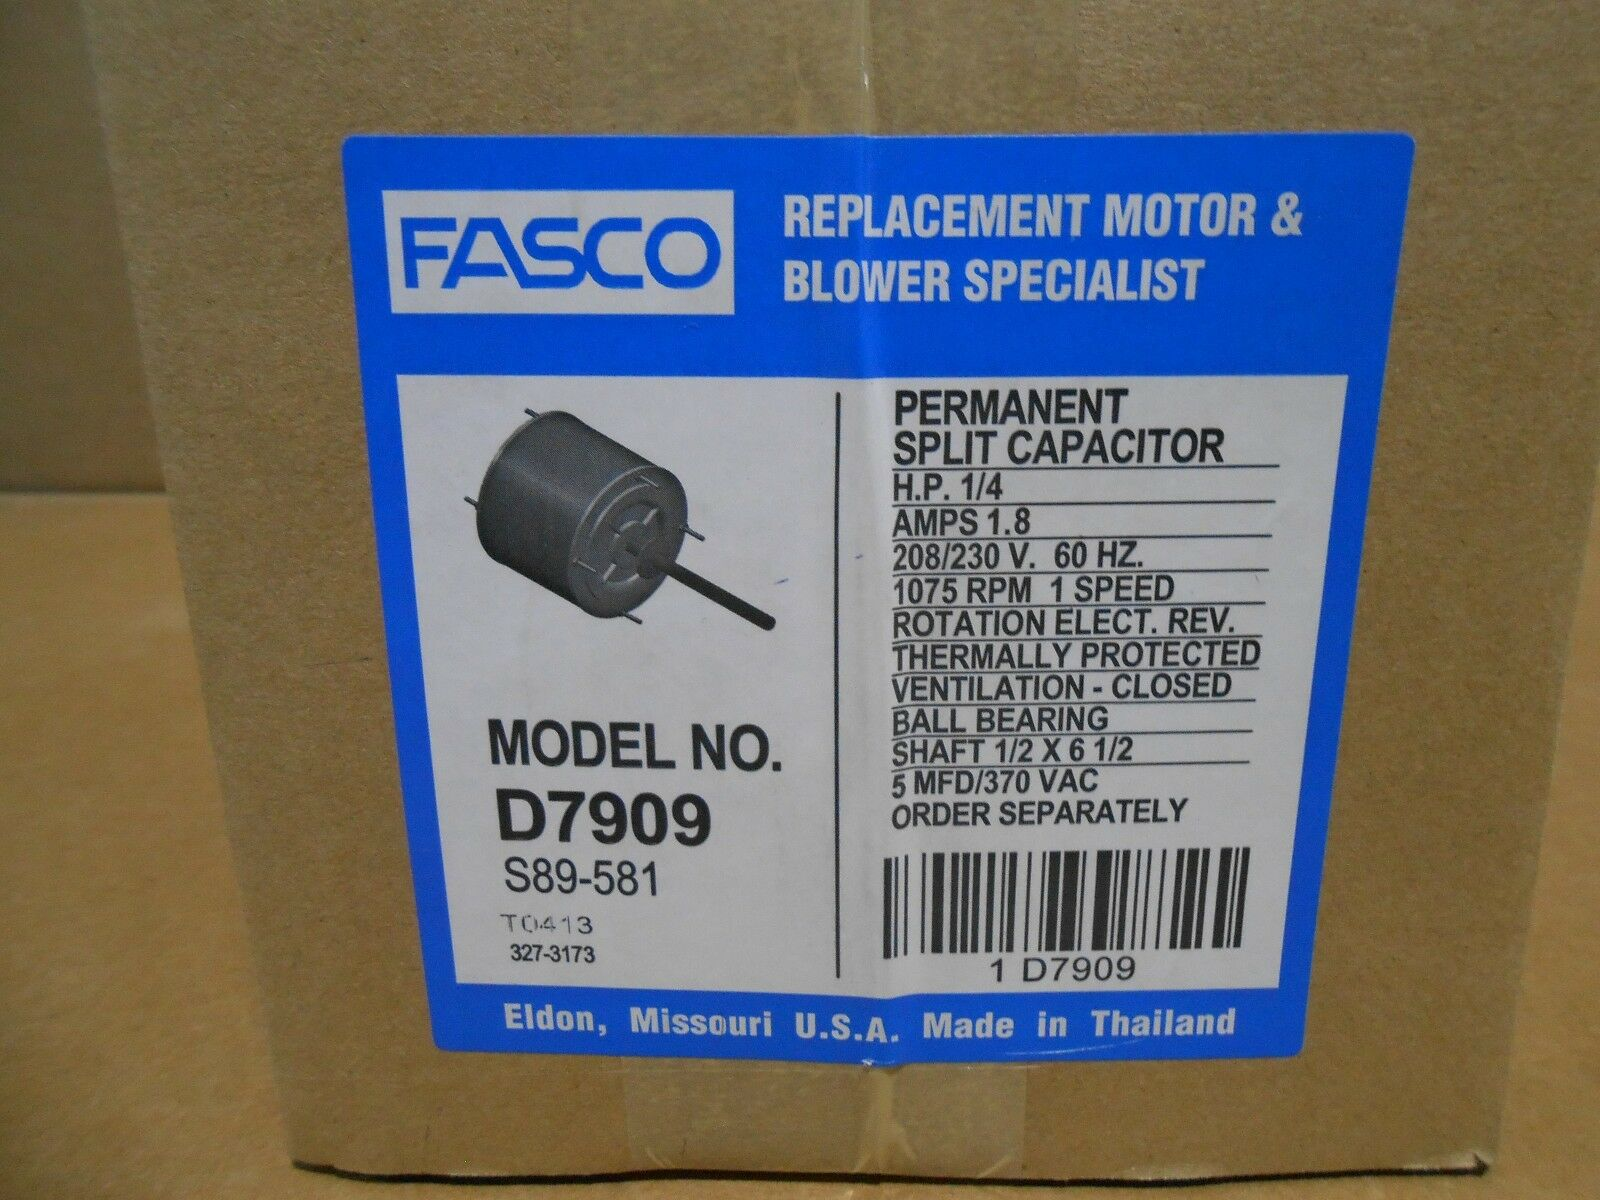 Fasco Motors Wiring Diagram Model No D7909. . Wiring Diagram on